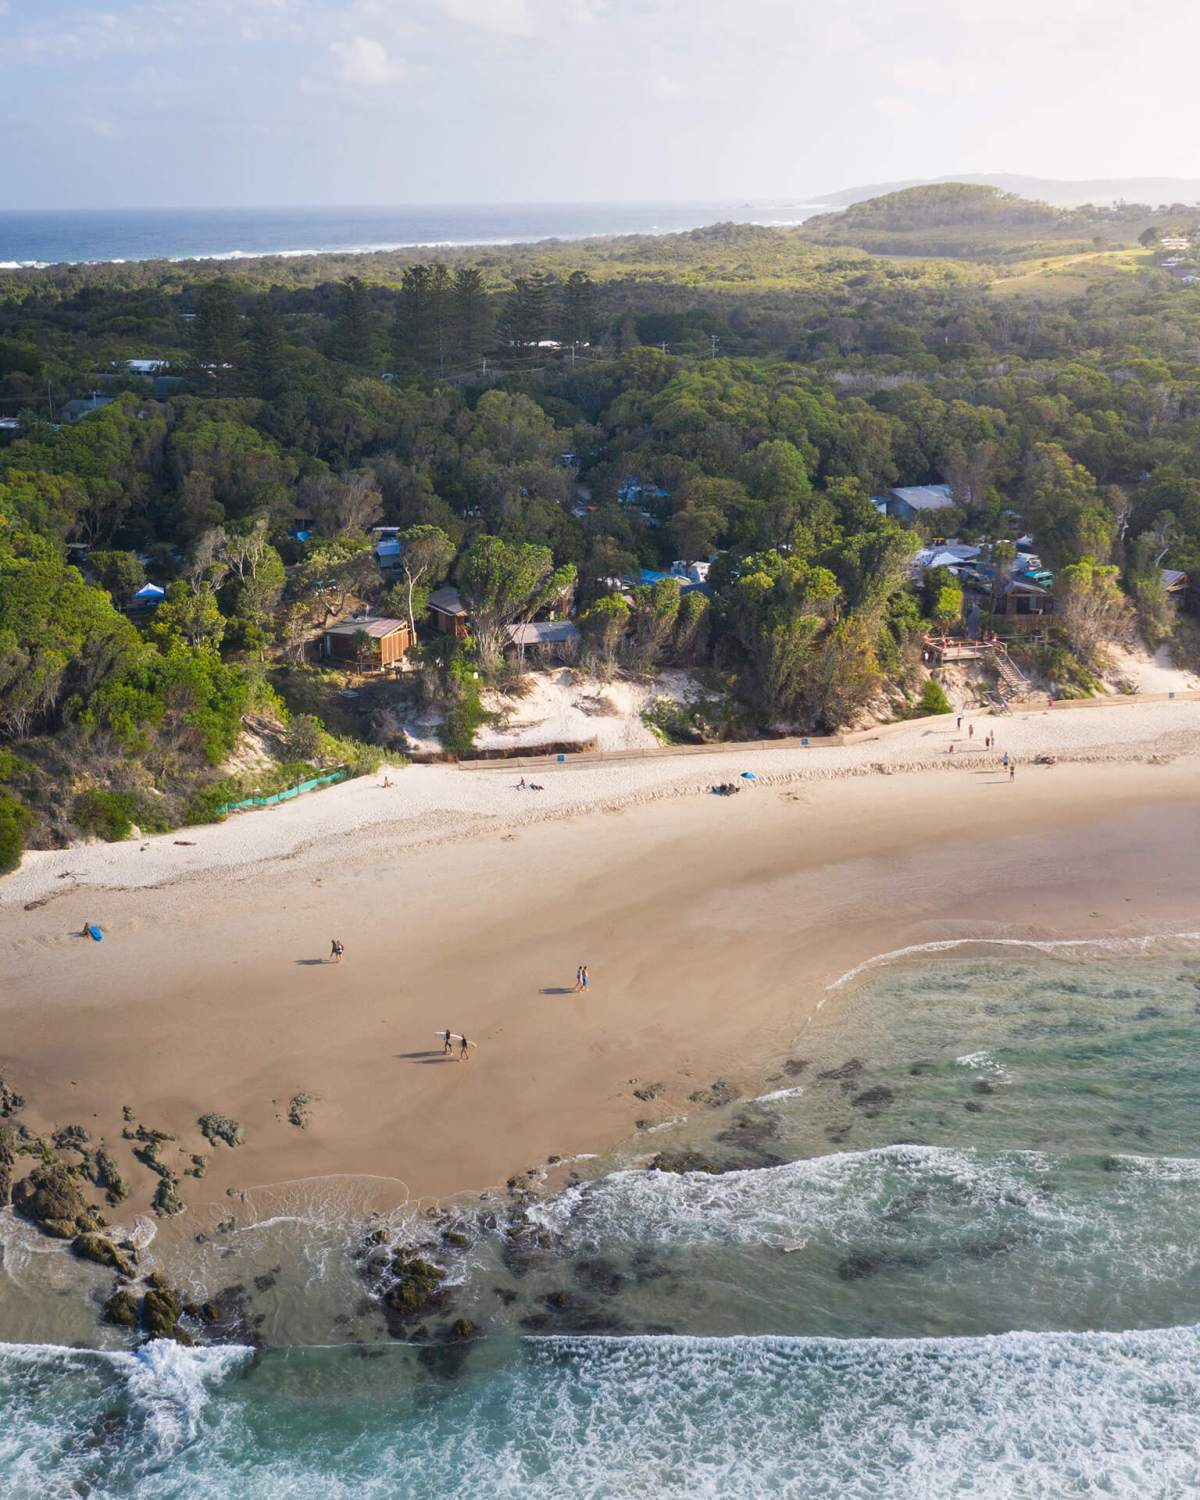 Drone Of Reflections Clarkes Beach